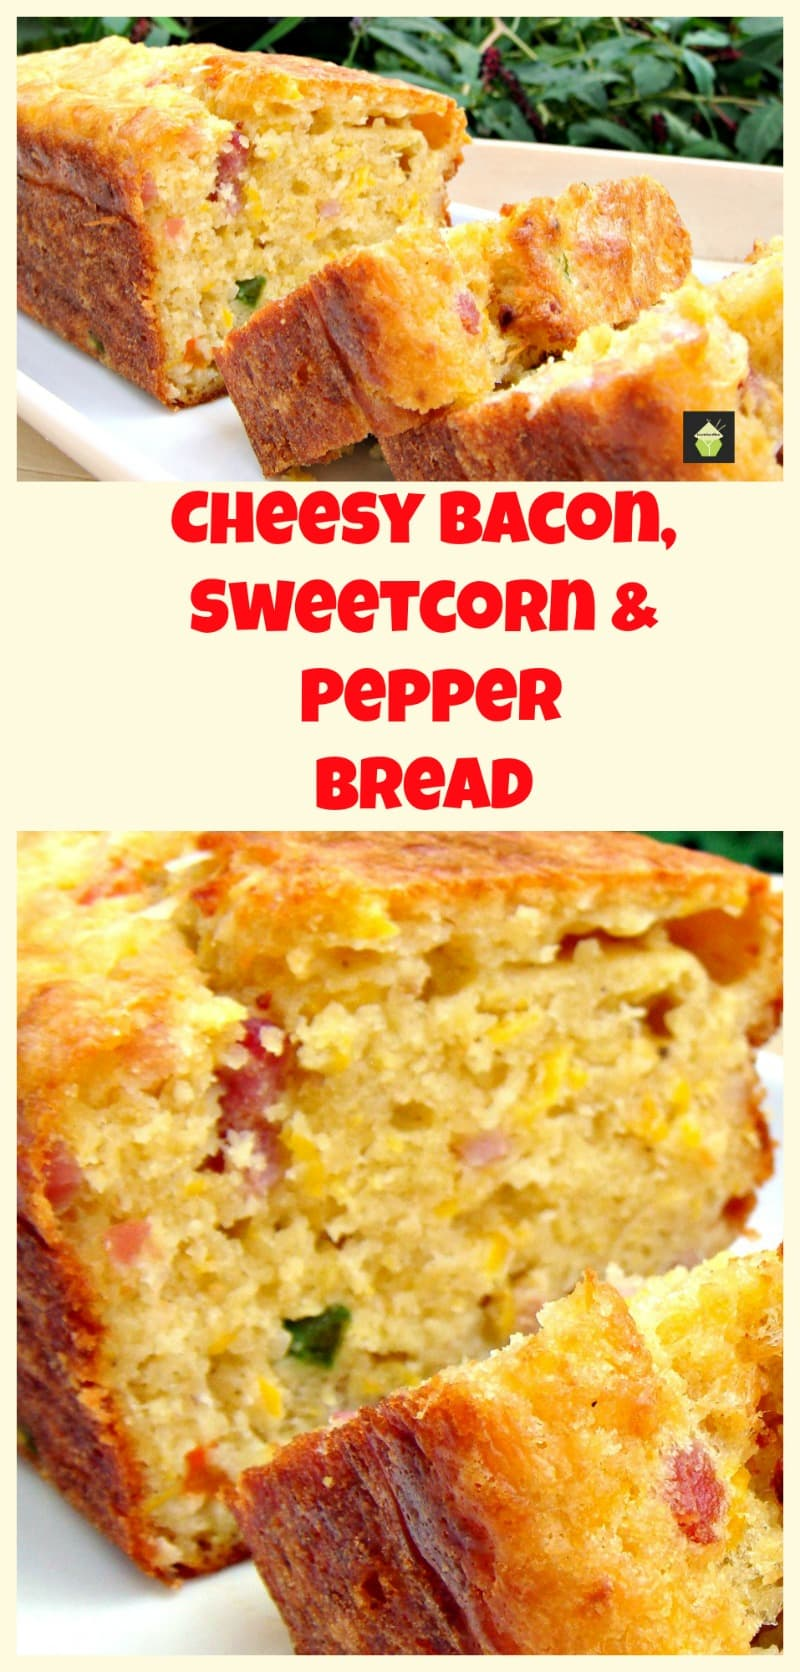 Cheesy Bacon, Sweet Corn and Pepper Bread Easy recipe and yep, VERY DELICIOUS! Serve warm or cold, tasty either way! Goes great with soups too.| Lovefoodies.com